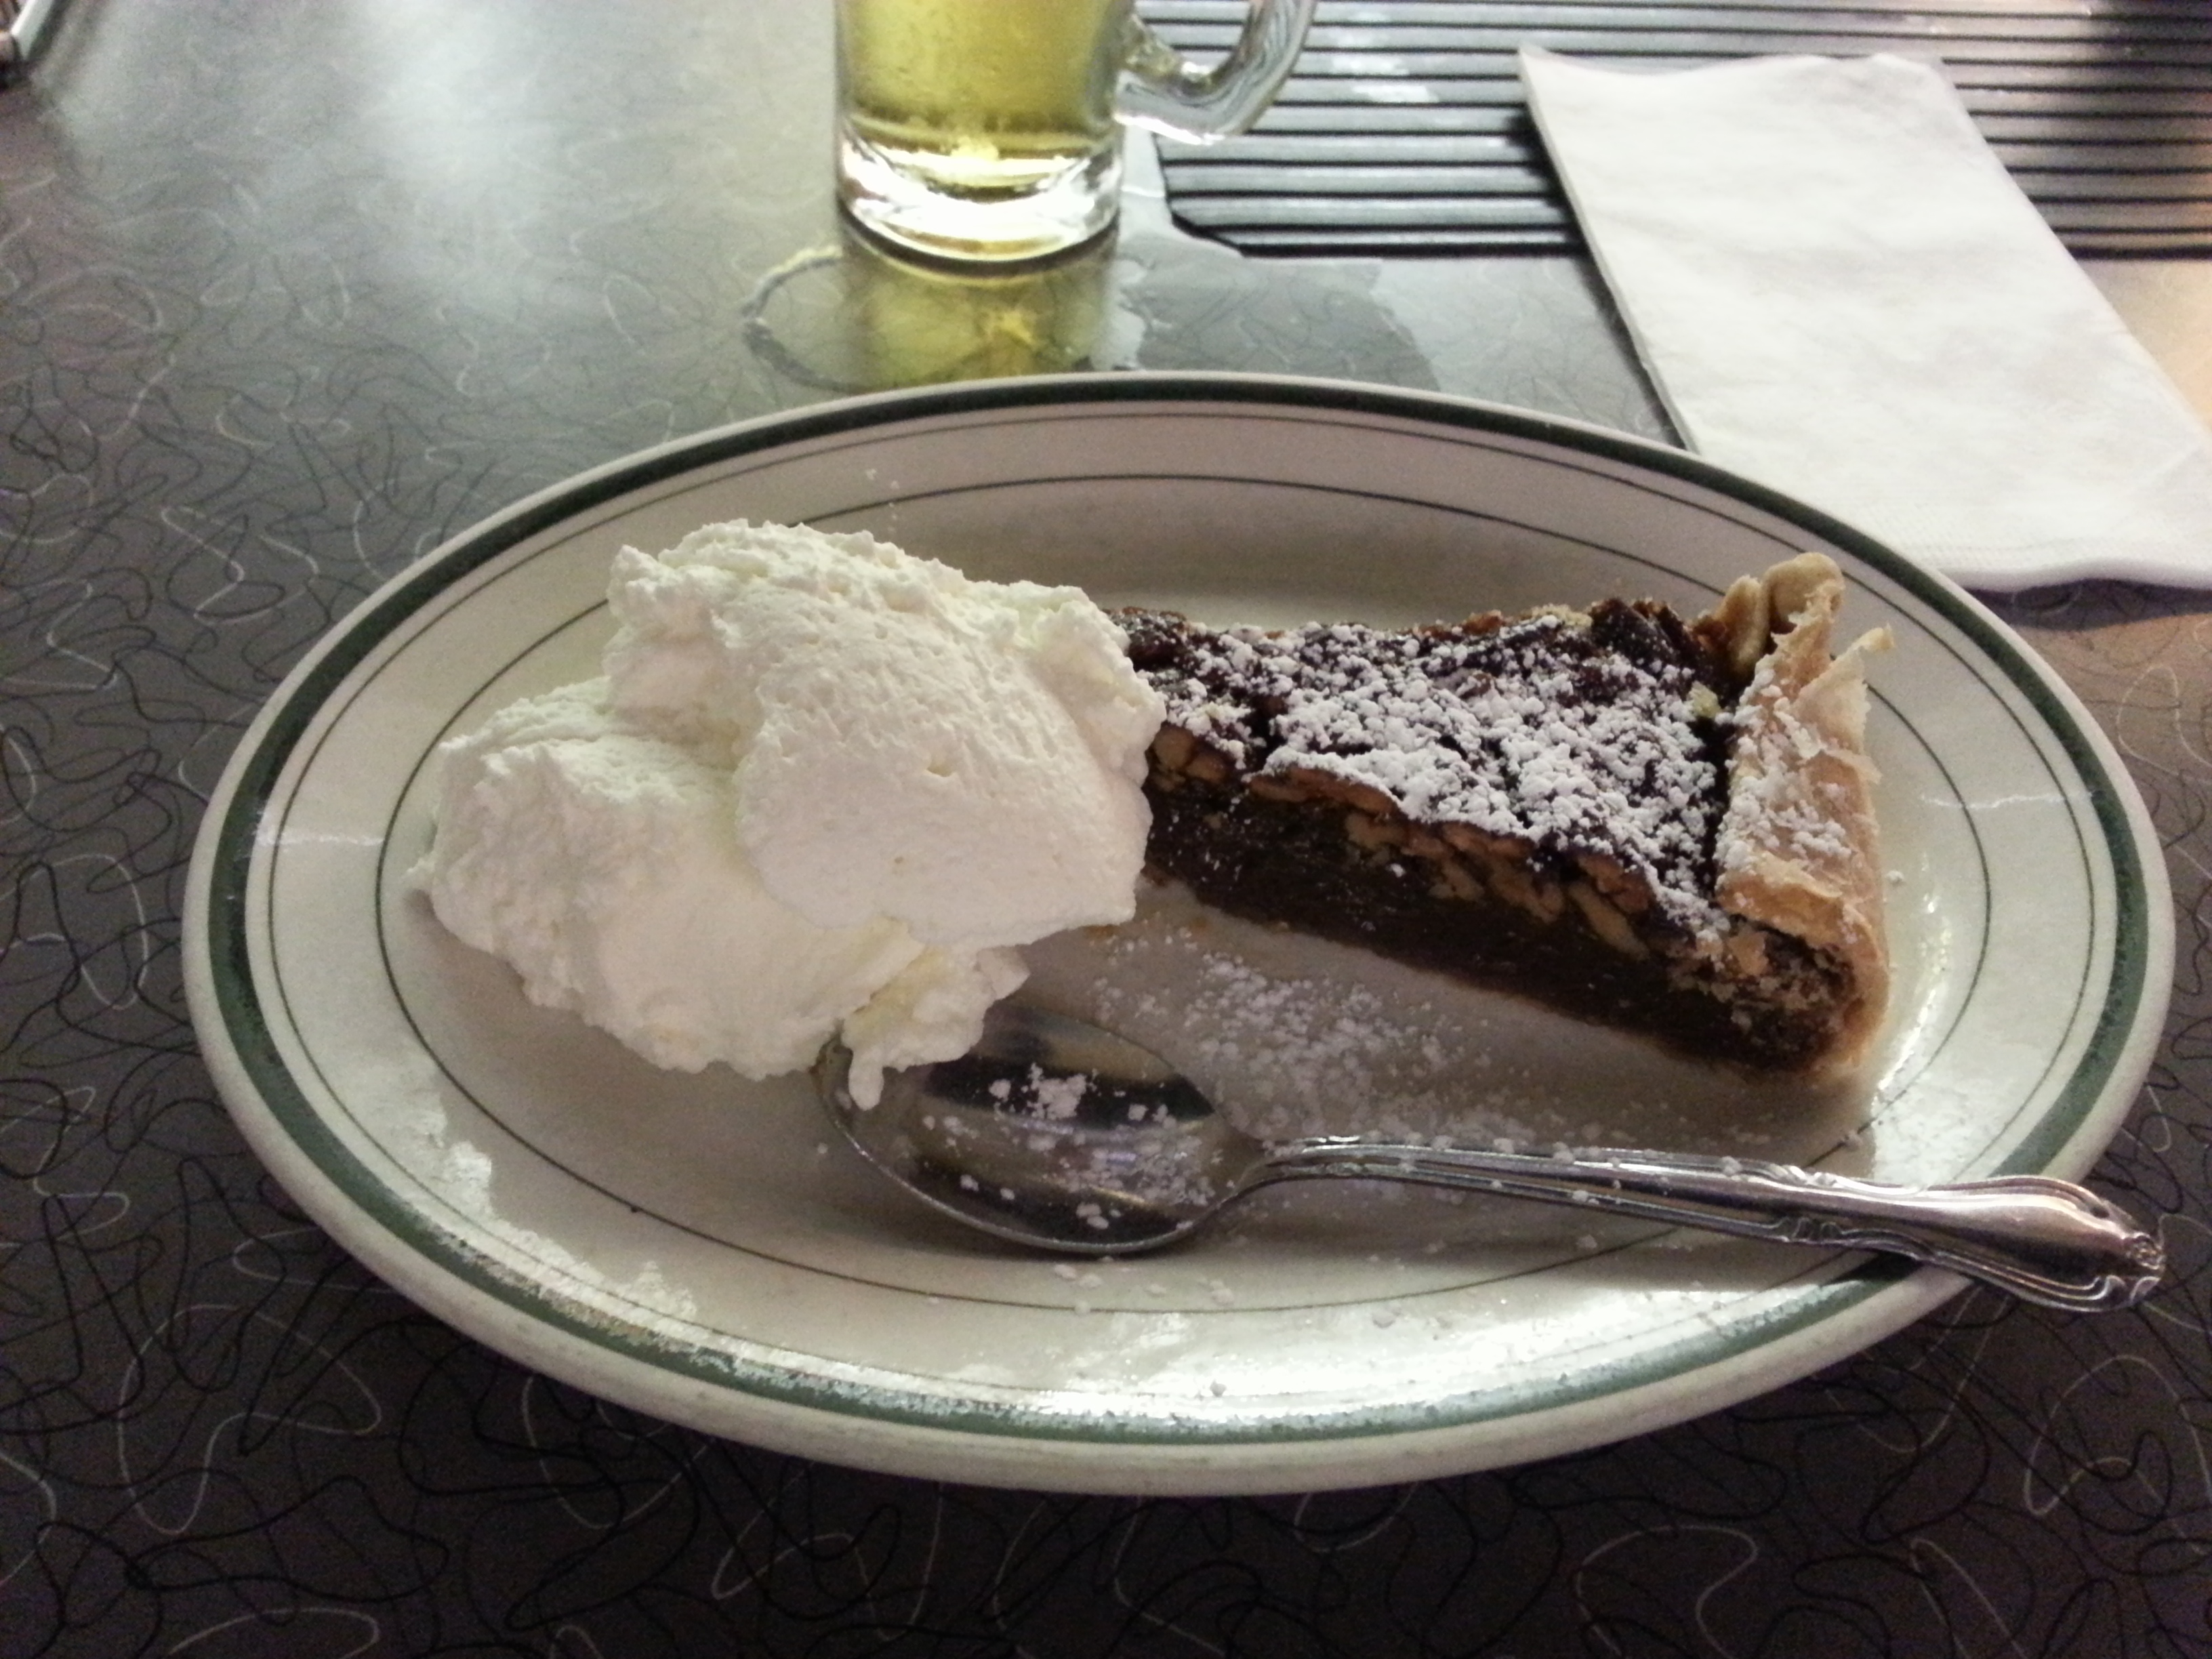 Pecan Pie was Trip Tucker's (Star Trek Enterprise) favourite dish and I wanted to experience it.